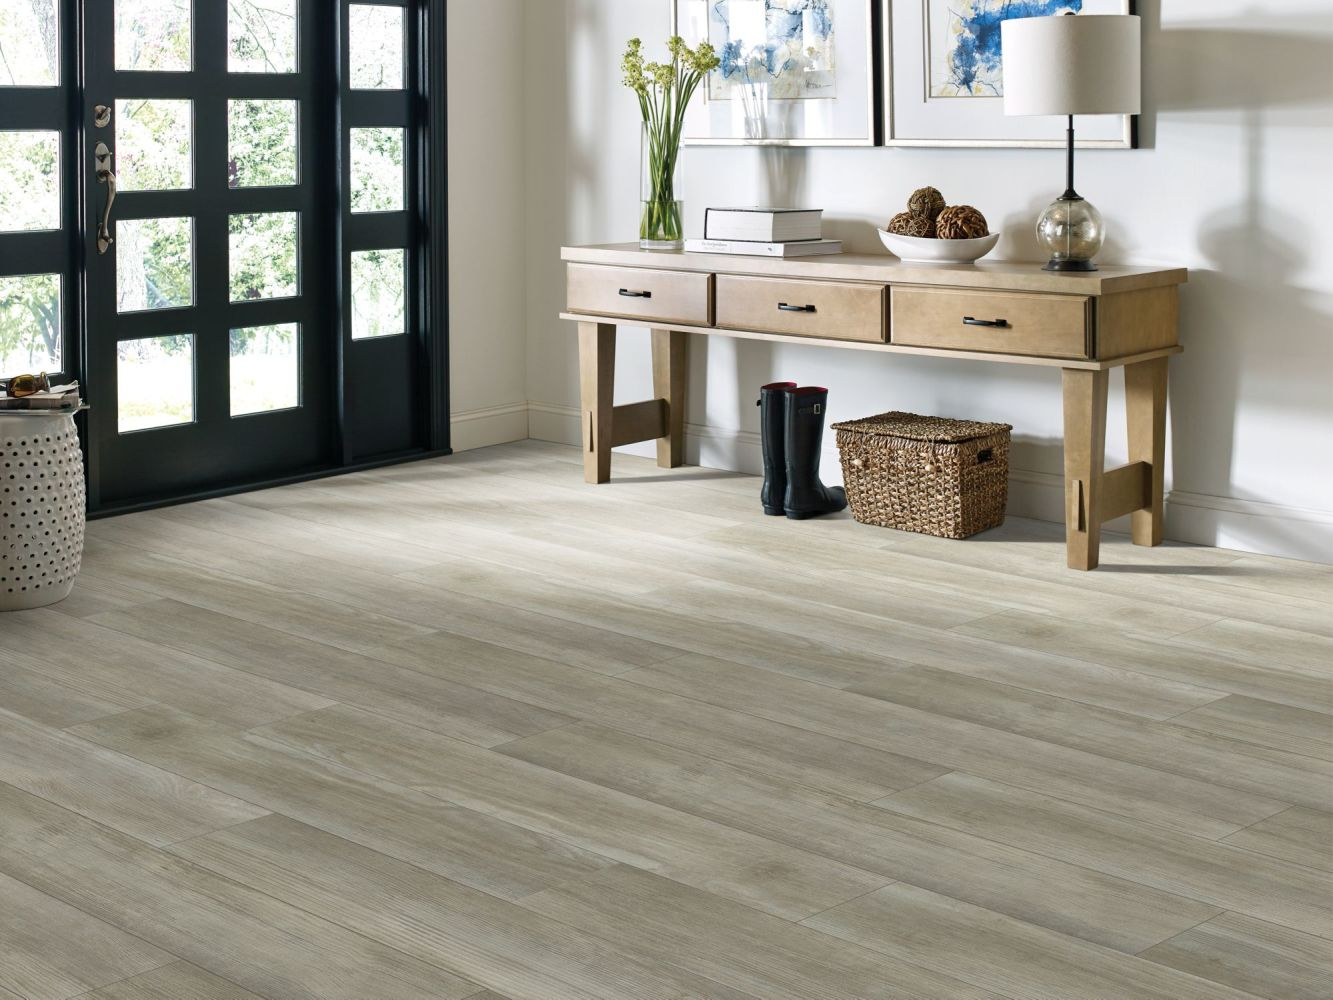 Shaw Floors Resilient Property Solutions Bonafide Hd+accent Spanish Moss 05089_VE427